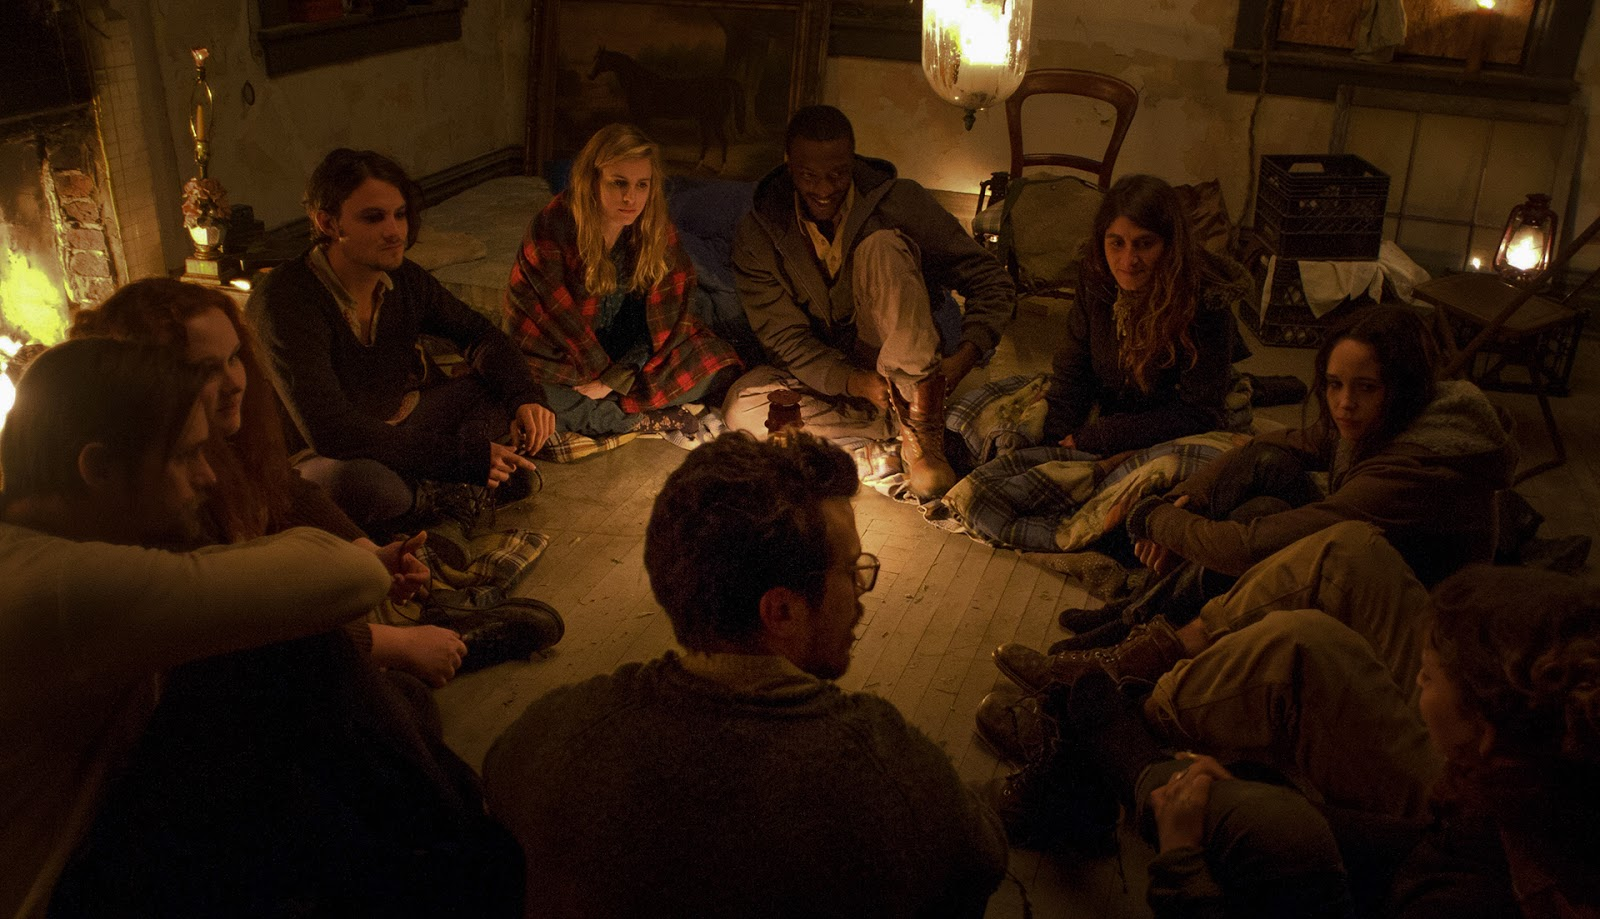 10203-ouija-2014-movie-trailer-in-hd-and-wallpapers.jpg